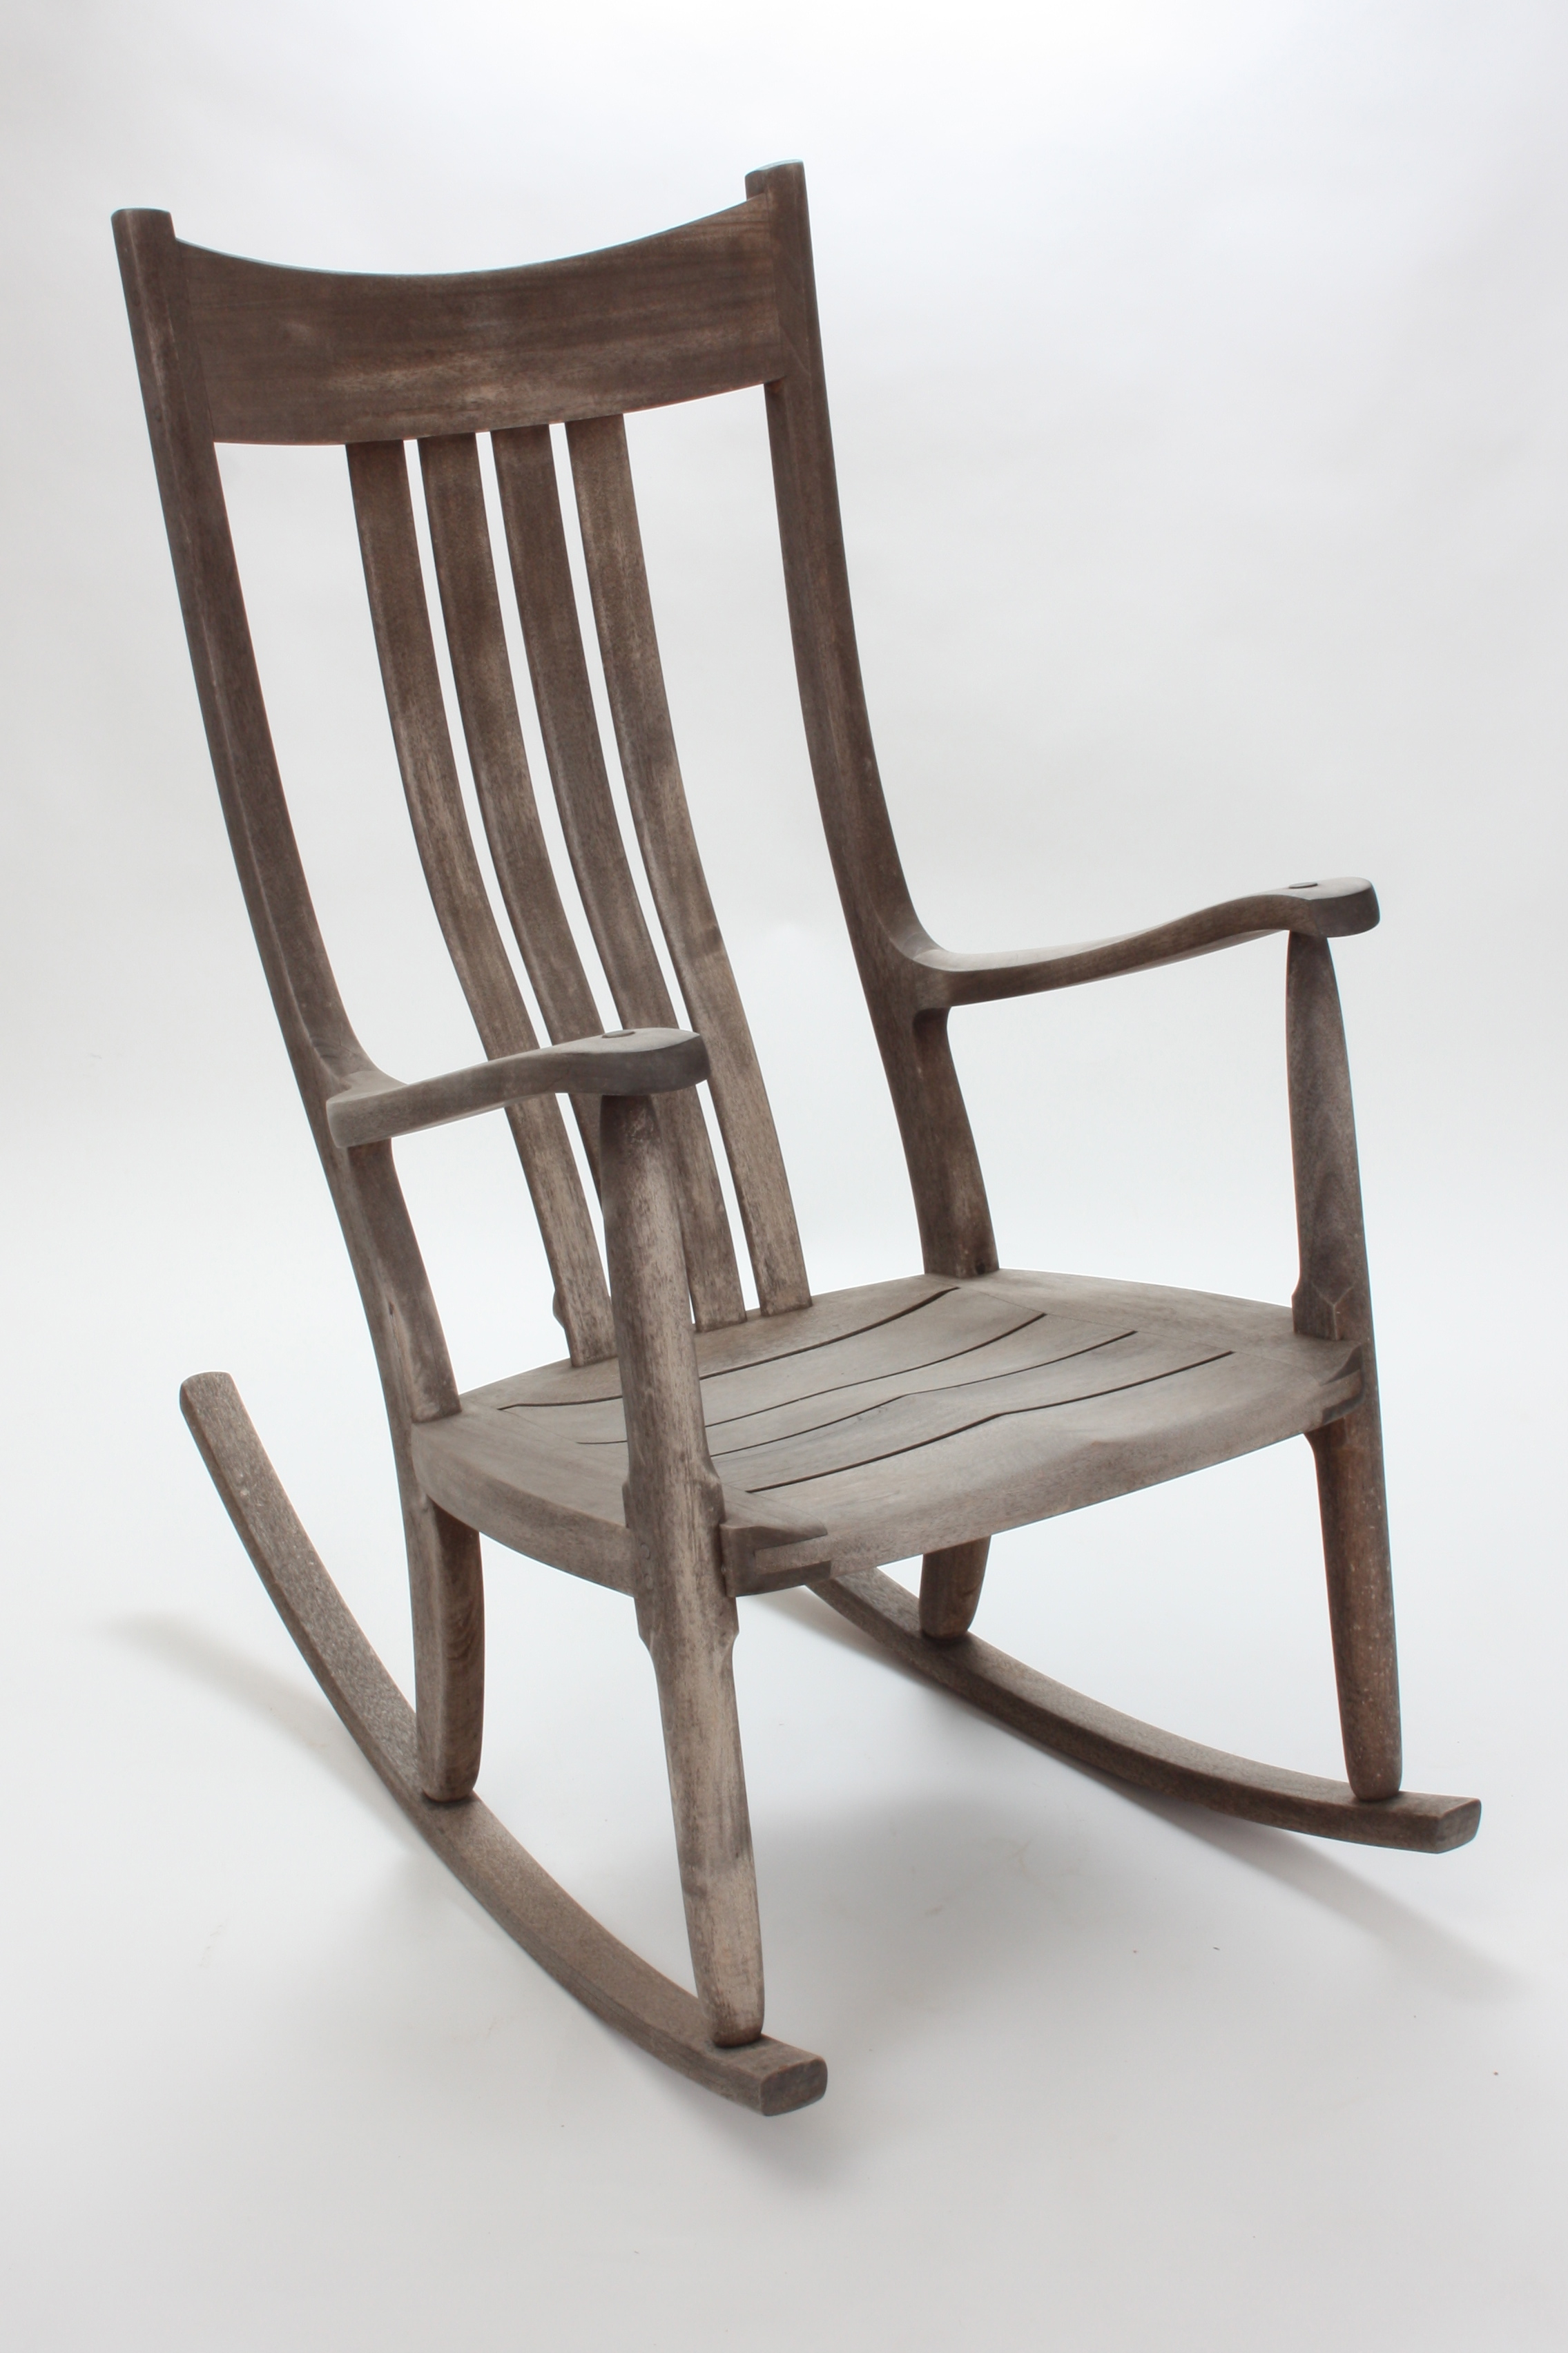 Weathered Mahogany, Occasionally Wiped Down, Would Not Appeal To Everyone,  So We Decided To Refinish This Chair, Beginning With A Deep Cleaning.